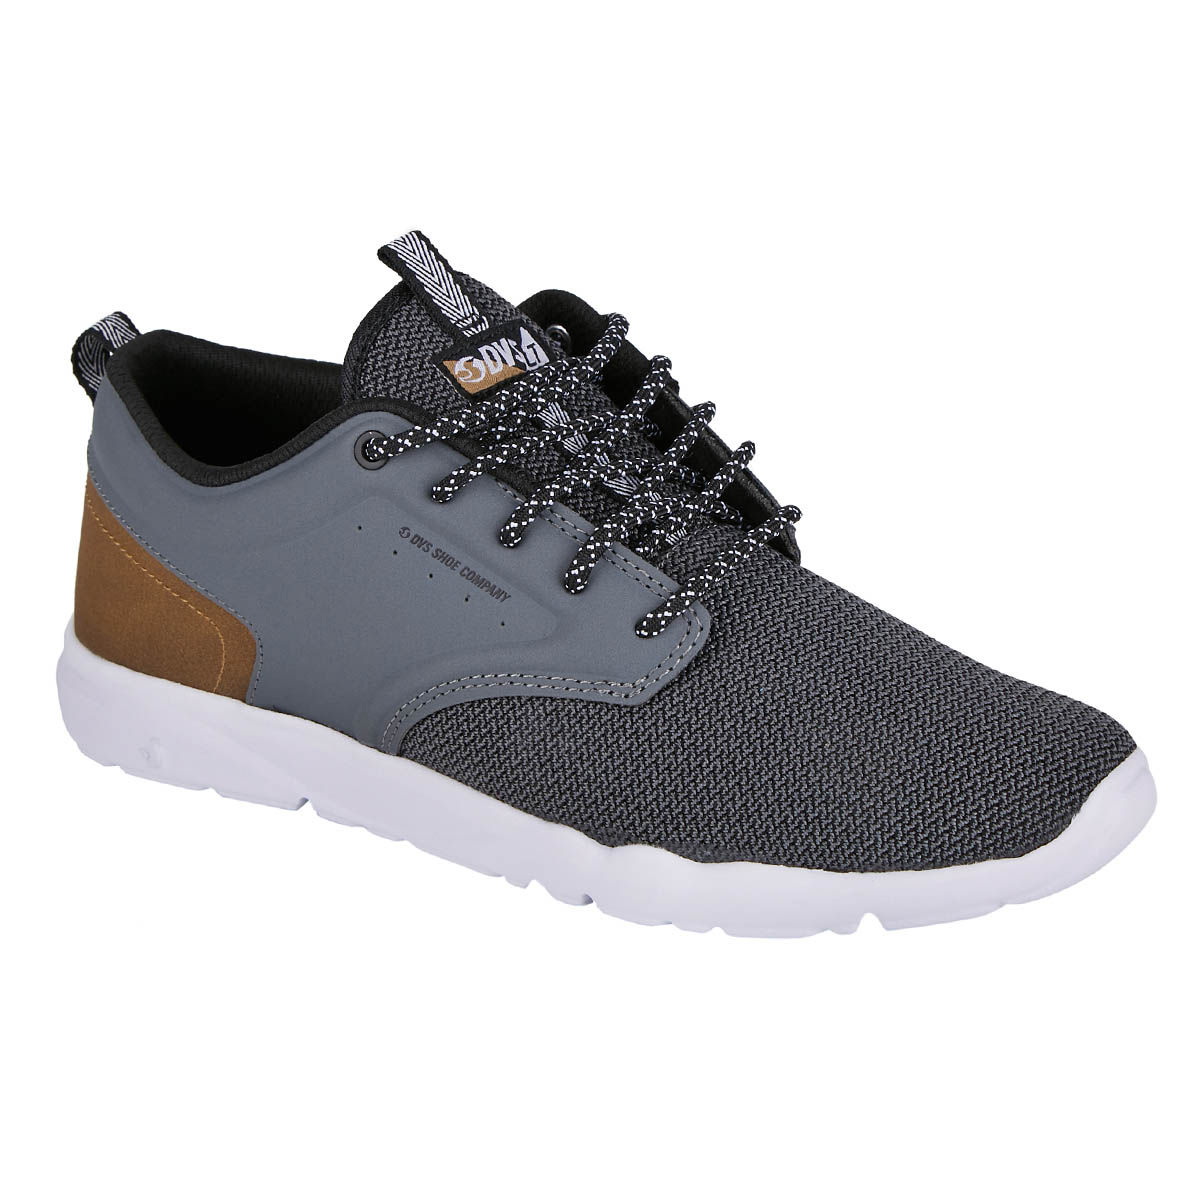 Clearance Perfect Eastbay For Sale DVS Premier 2.0+ Sneaker(Men's) -Black/Charcoal Textile Knit Discount Eastbay Great Deals Discount 2018 Newest w6fKCRG9ce